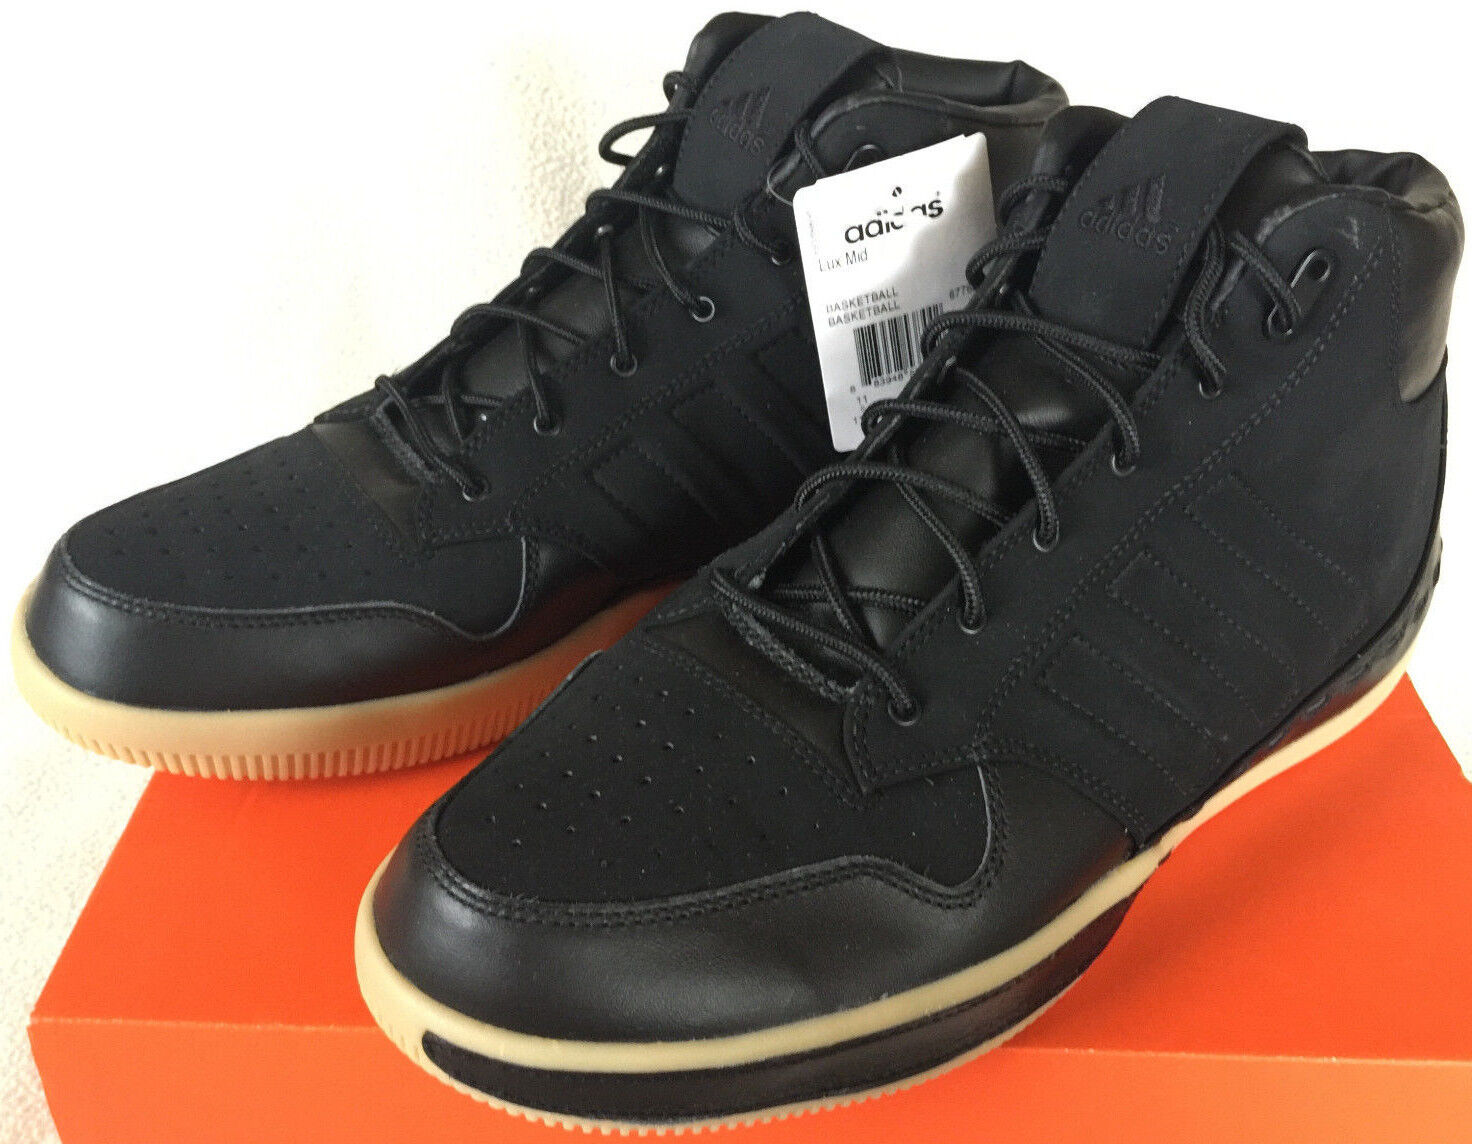 Adidas Lux Mid 677620 Luxury Gum Noir Leather Basketball Shoes Men's 9 NBA new